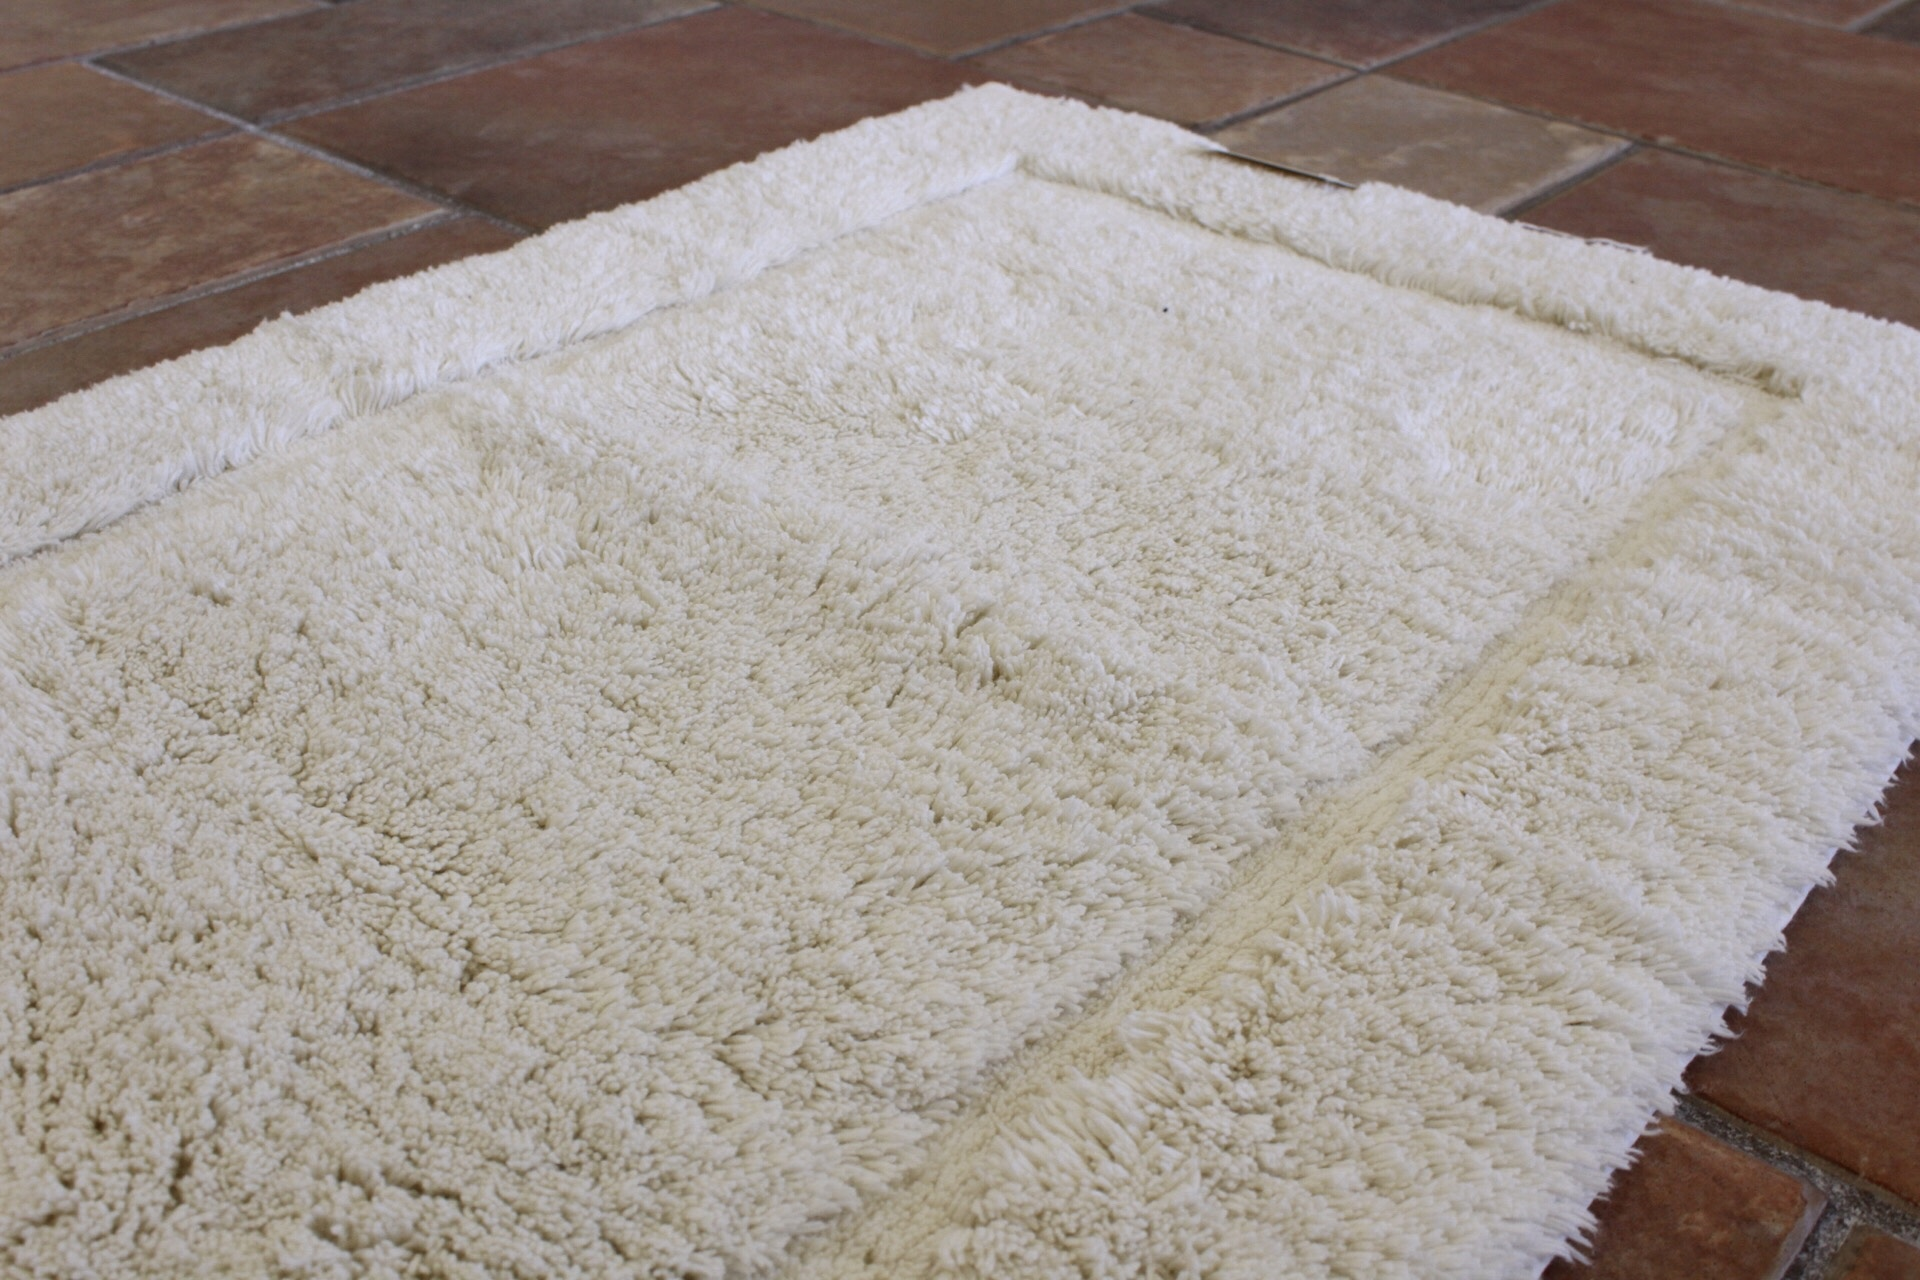 Your bathroom won't be complete without one of these bath mats from Matouk.